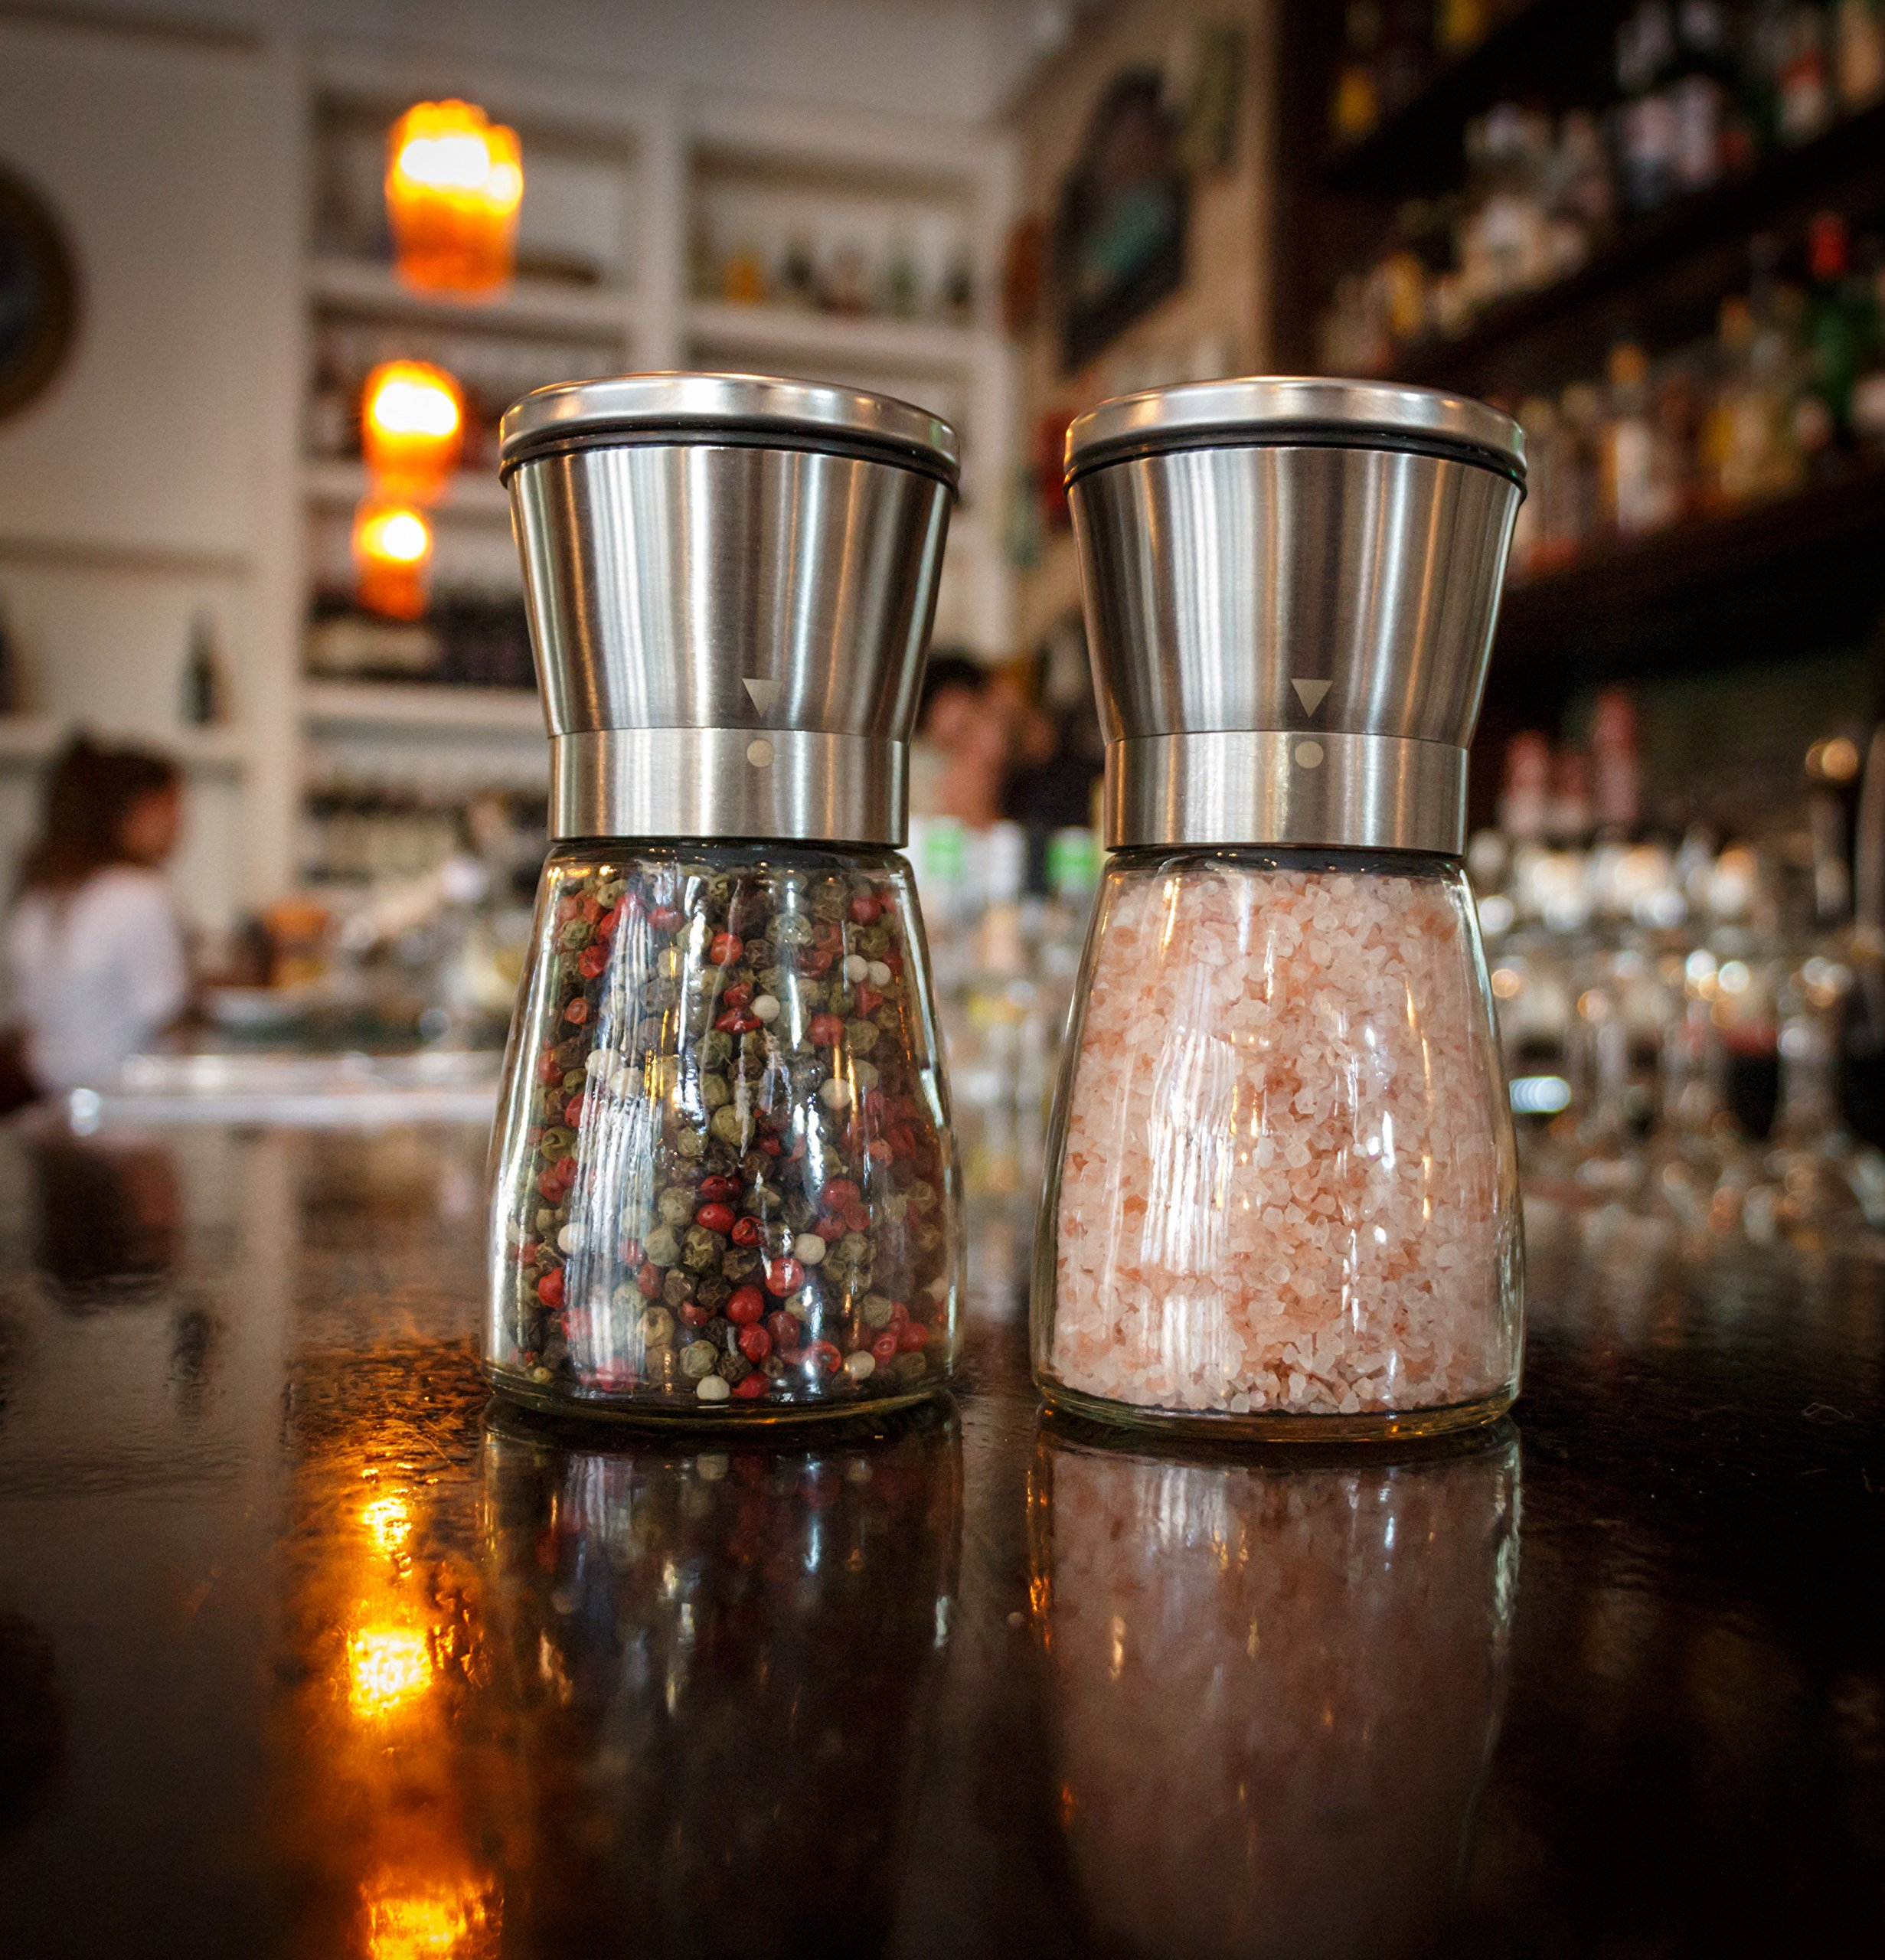 Salt and Pepper Grinder Set - Salt and Pepper Shakers for Professional Chef - Best Spice Mill with Brushed Stainless Steel, Special Mark, Ceramic Blades and Adjustable Coarseness by Kitchen-GO (Image #2)